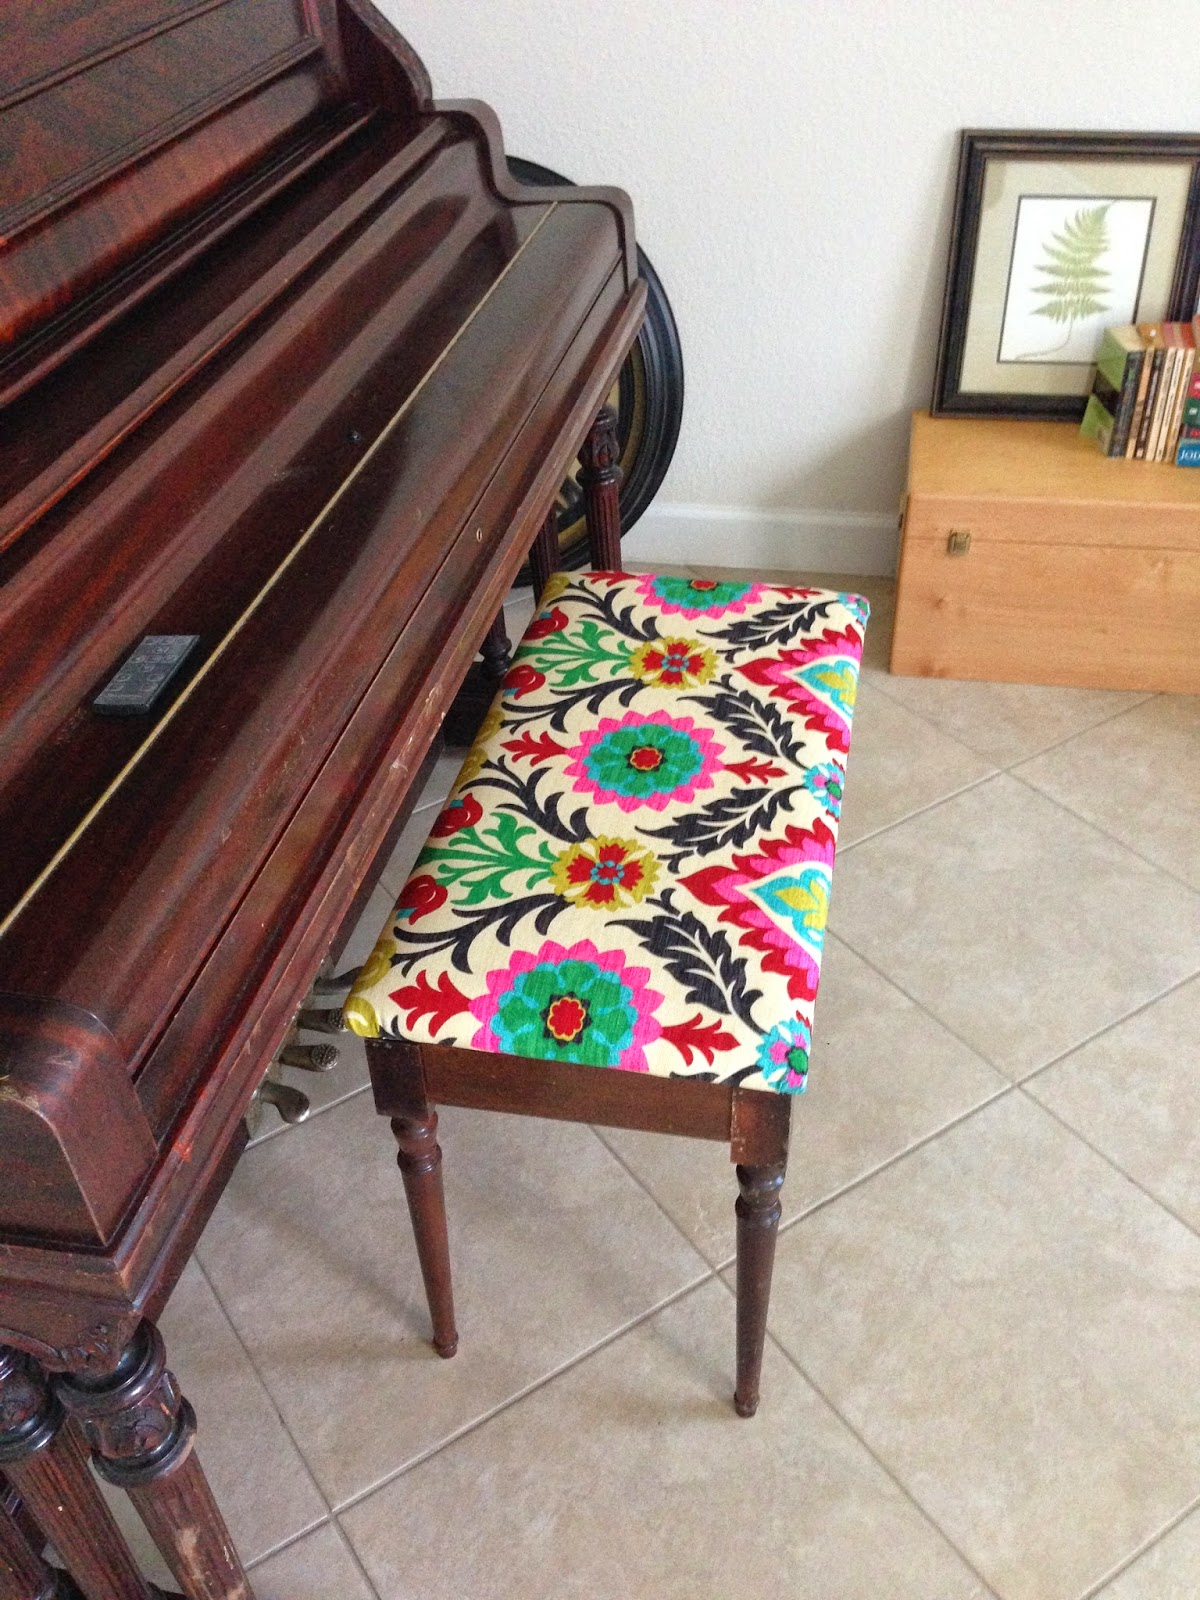 42 Inch Bench Cushion | Indoor Bench Cushion 48 X 16 | Piano Bench Cushion